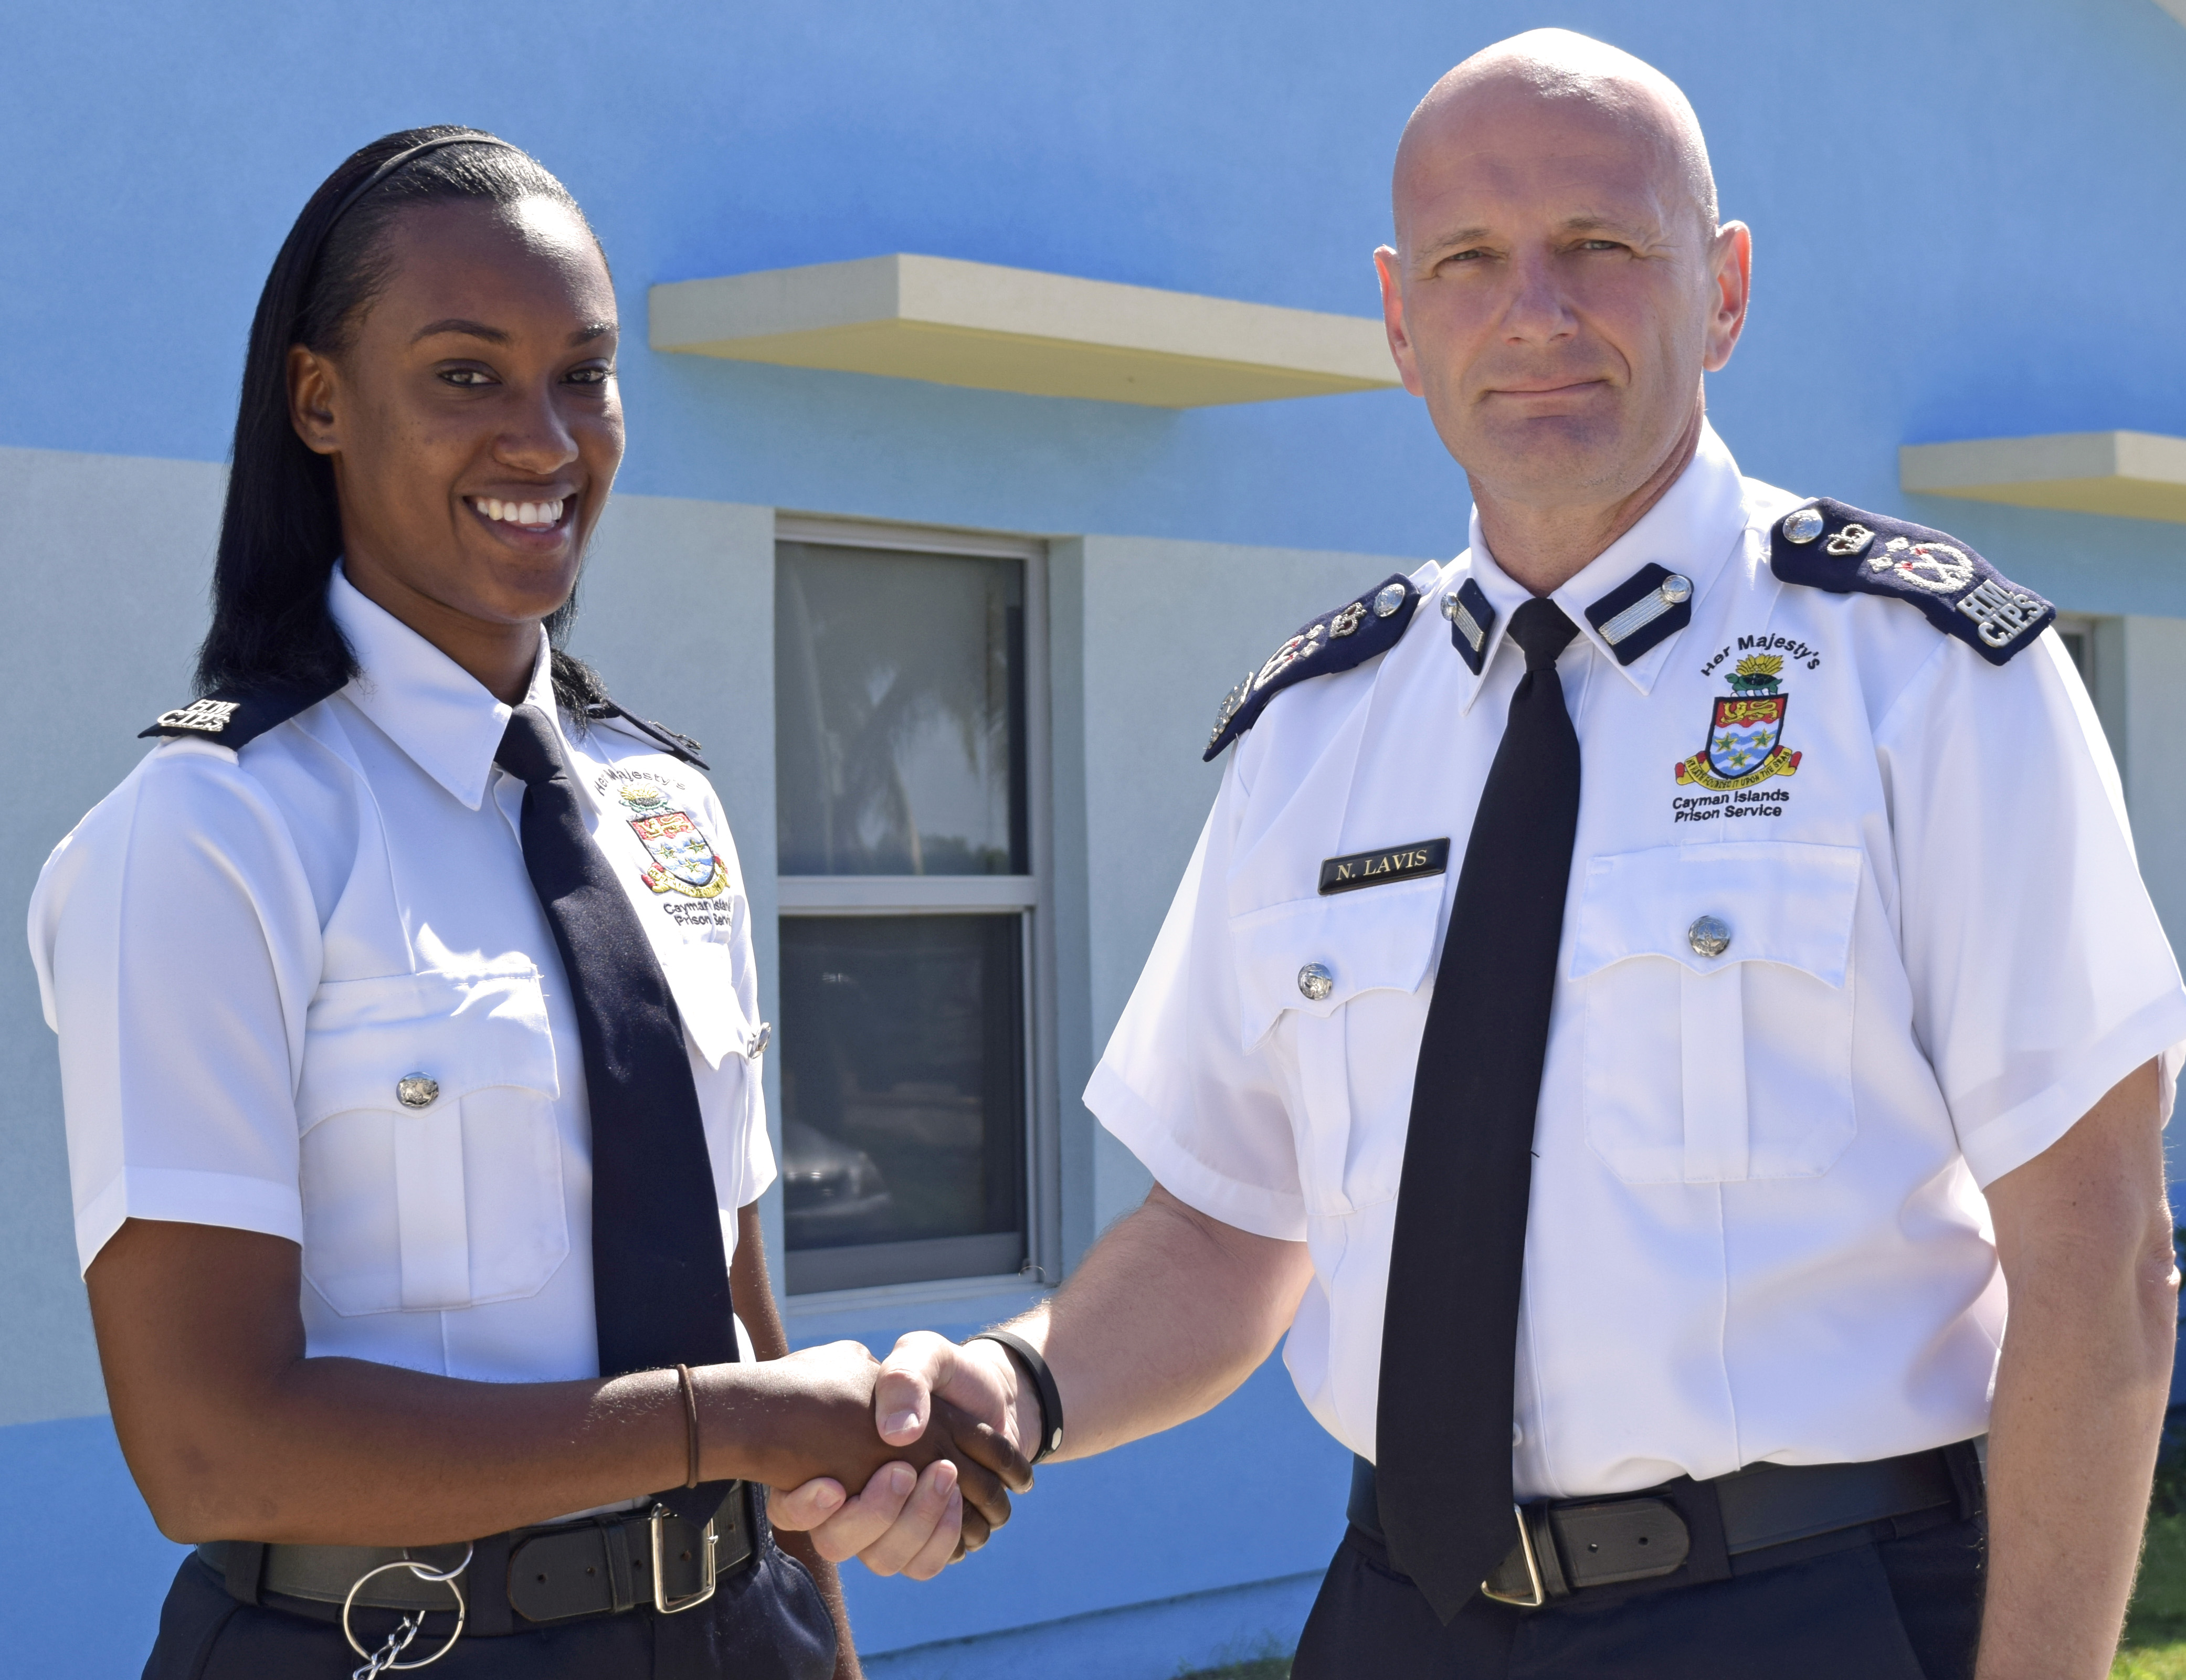 HMCIPS is proud to announce the recent promotion of Ms. Roxanne Walton as the newest prison officer.